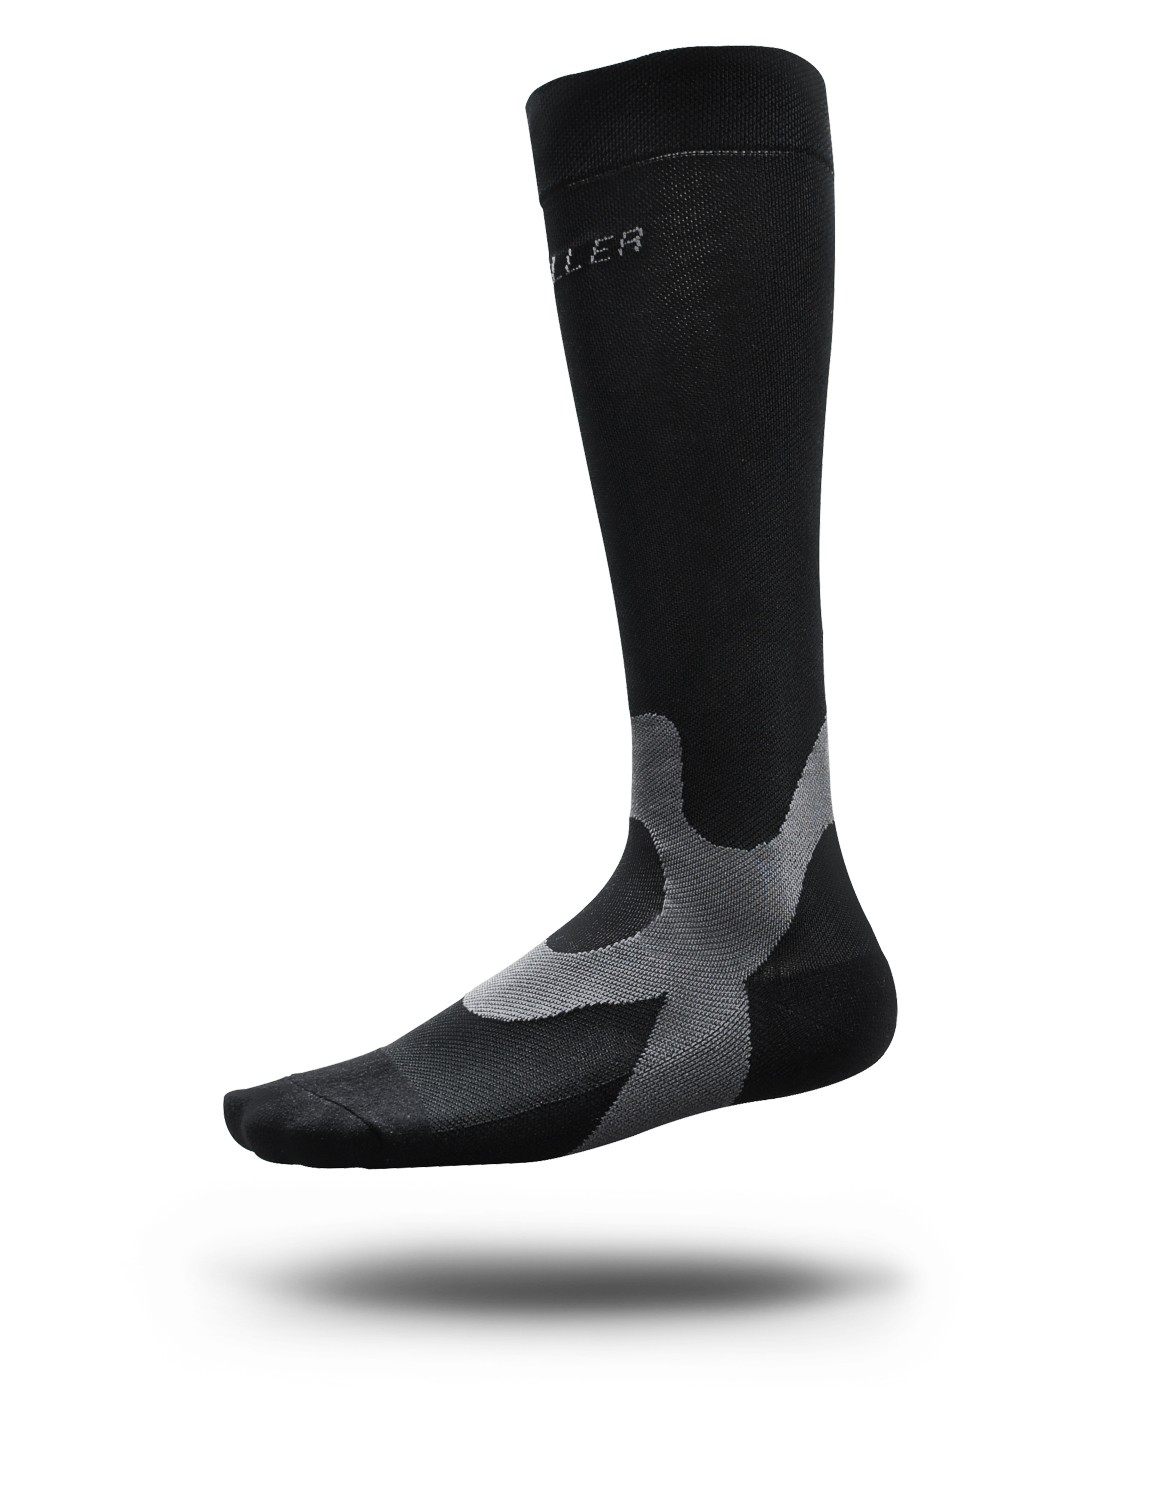 486f12ec0bb74 Graduated Compression Socks - Performance | Mueller Sports Medicine